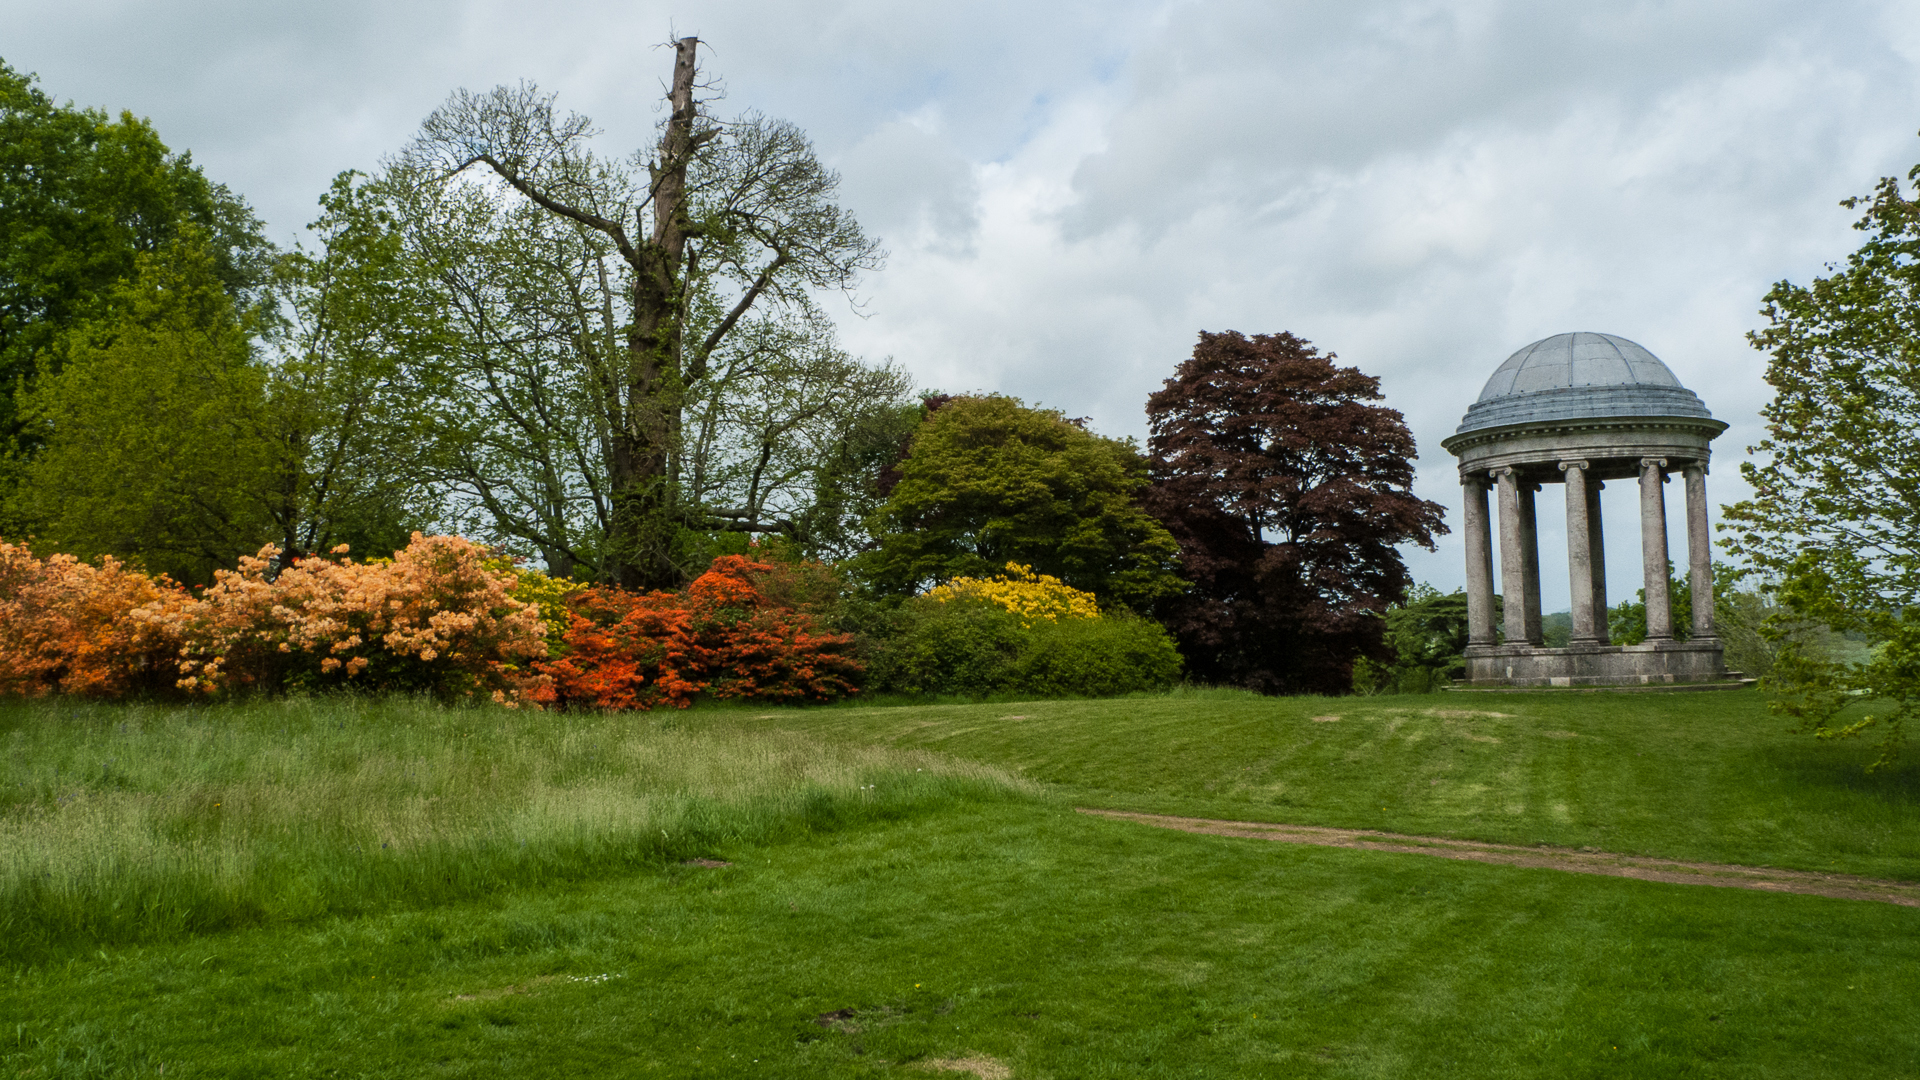 There were many flowering shrubs throughout the grounds, and a number of architectural features to check out.